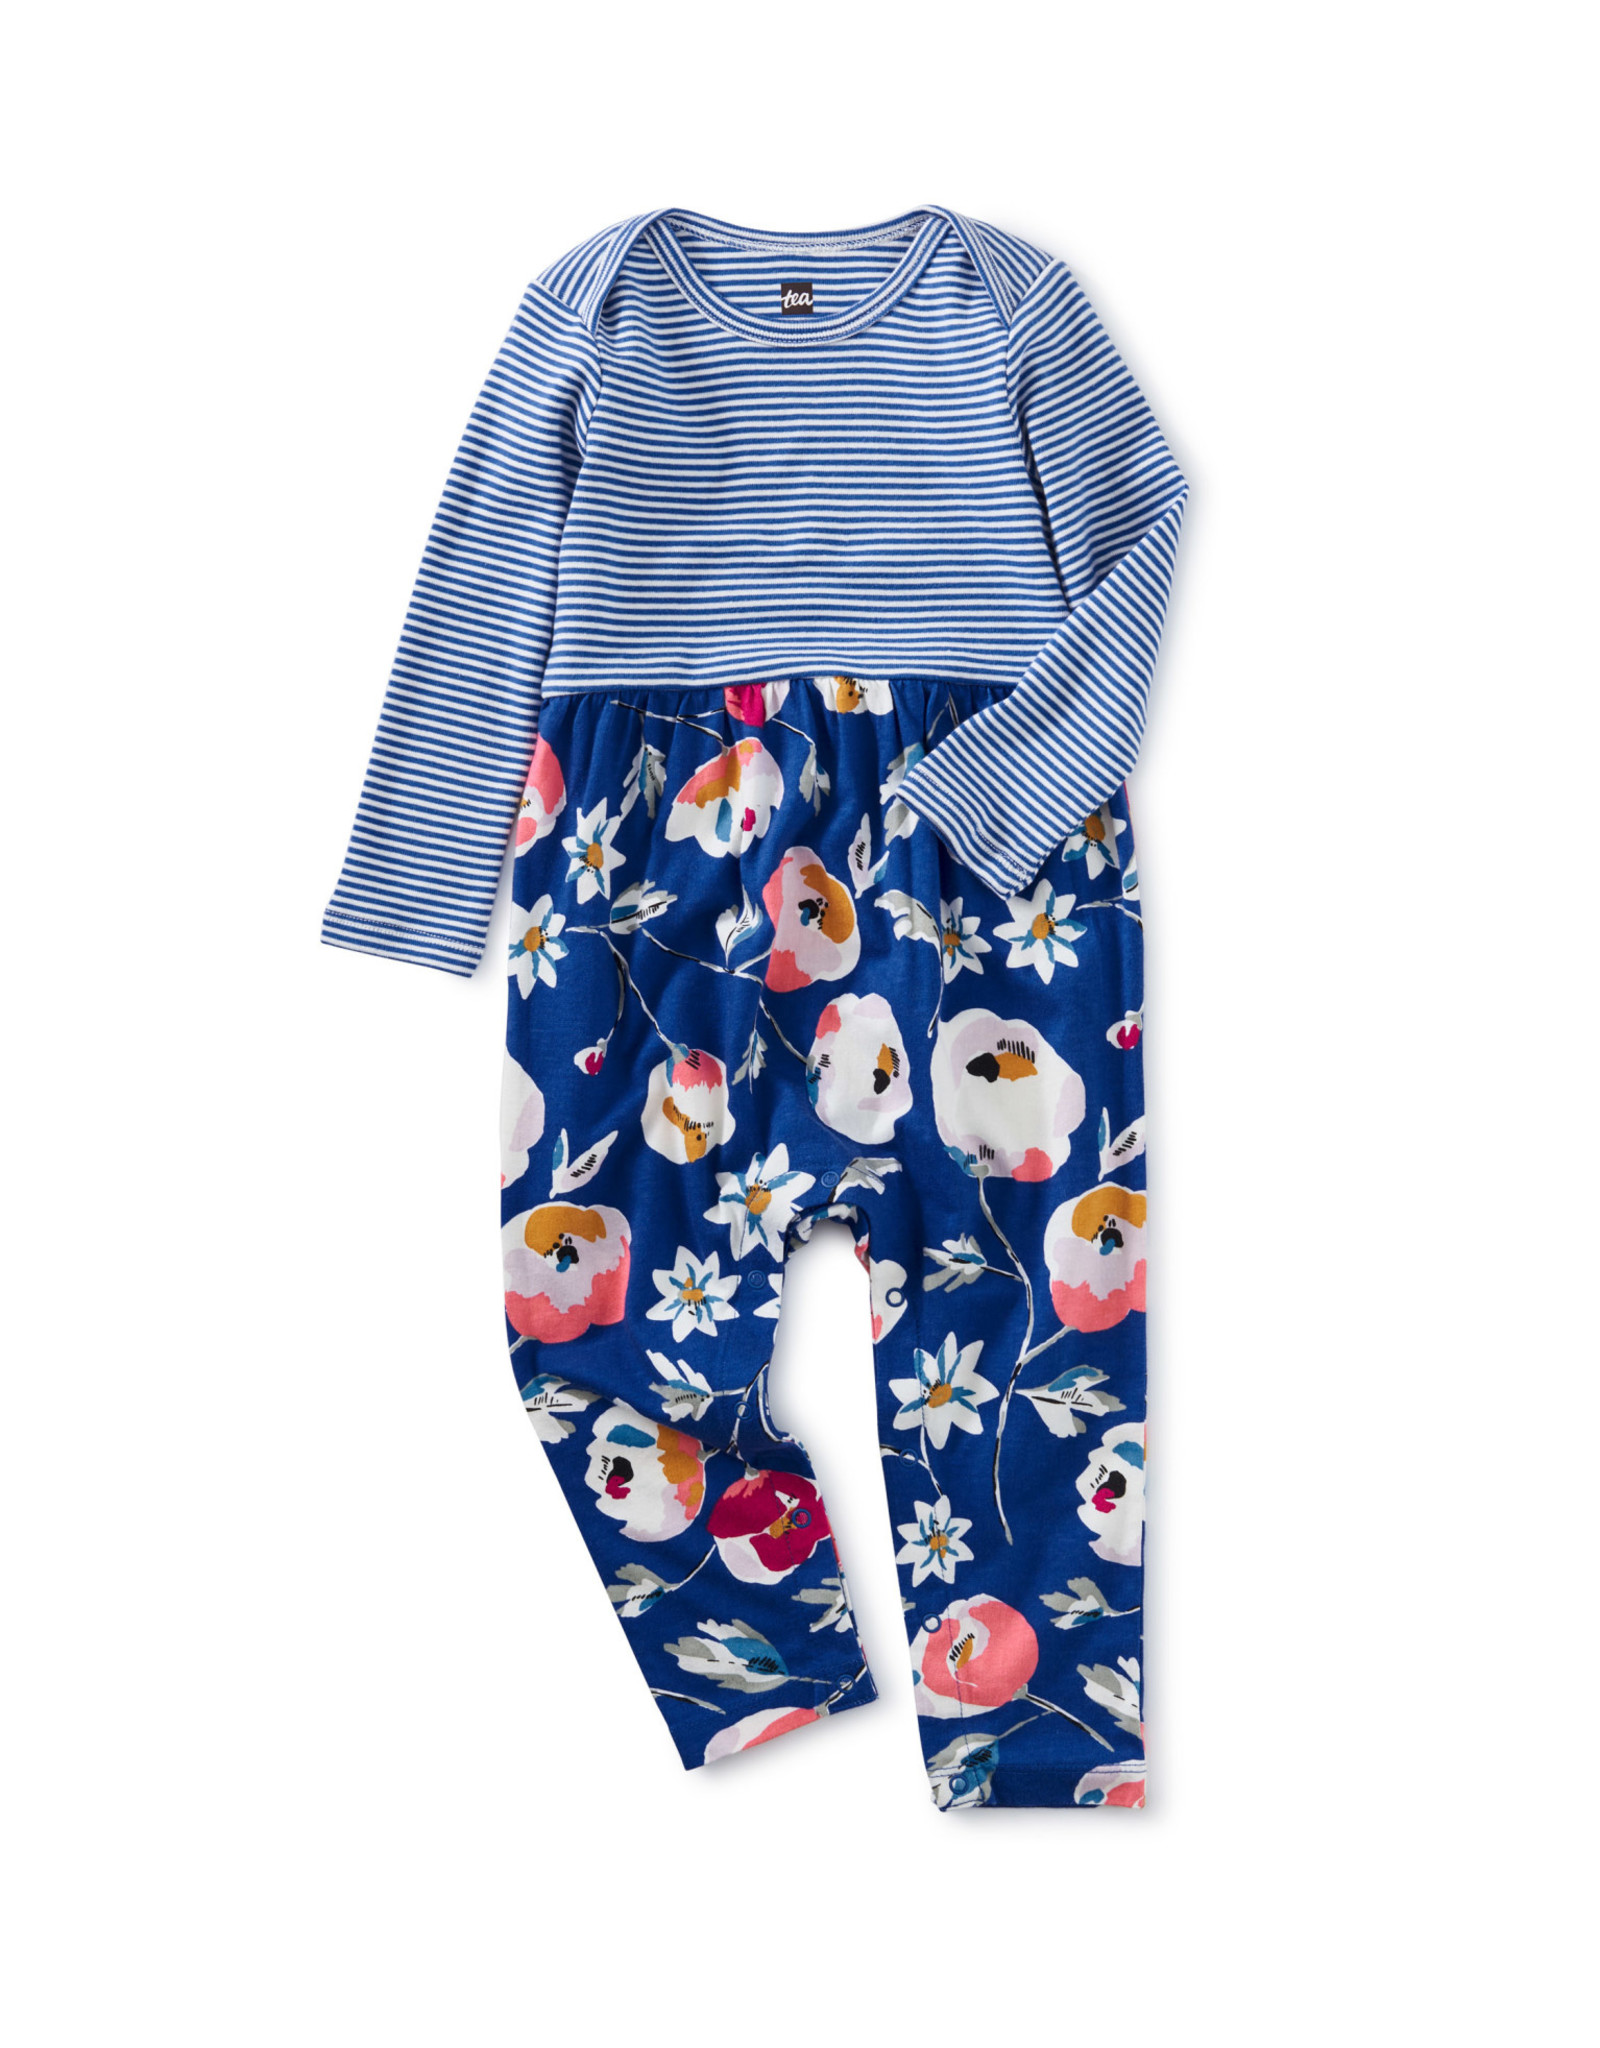 Tea Two Tone Baby Romper, Swedish Flowers in Imperial